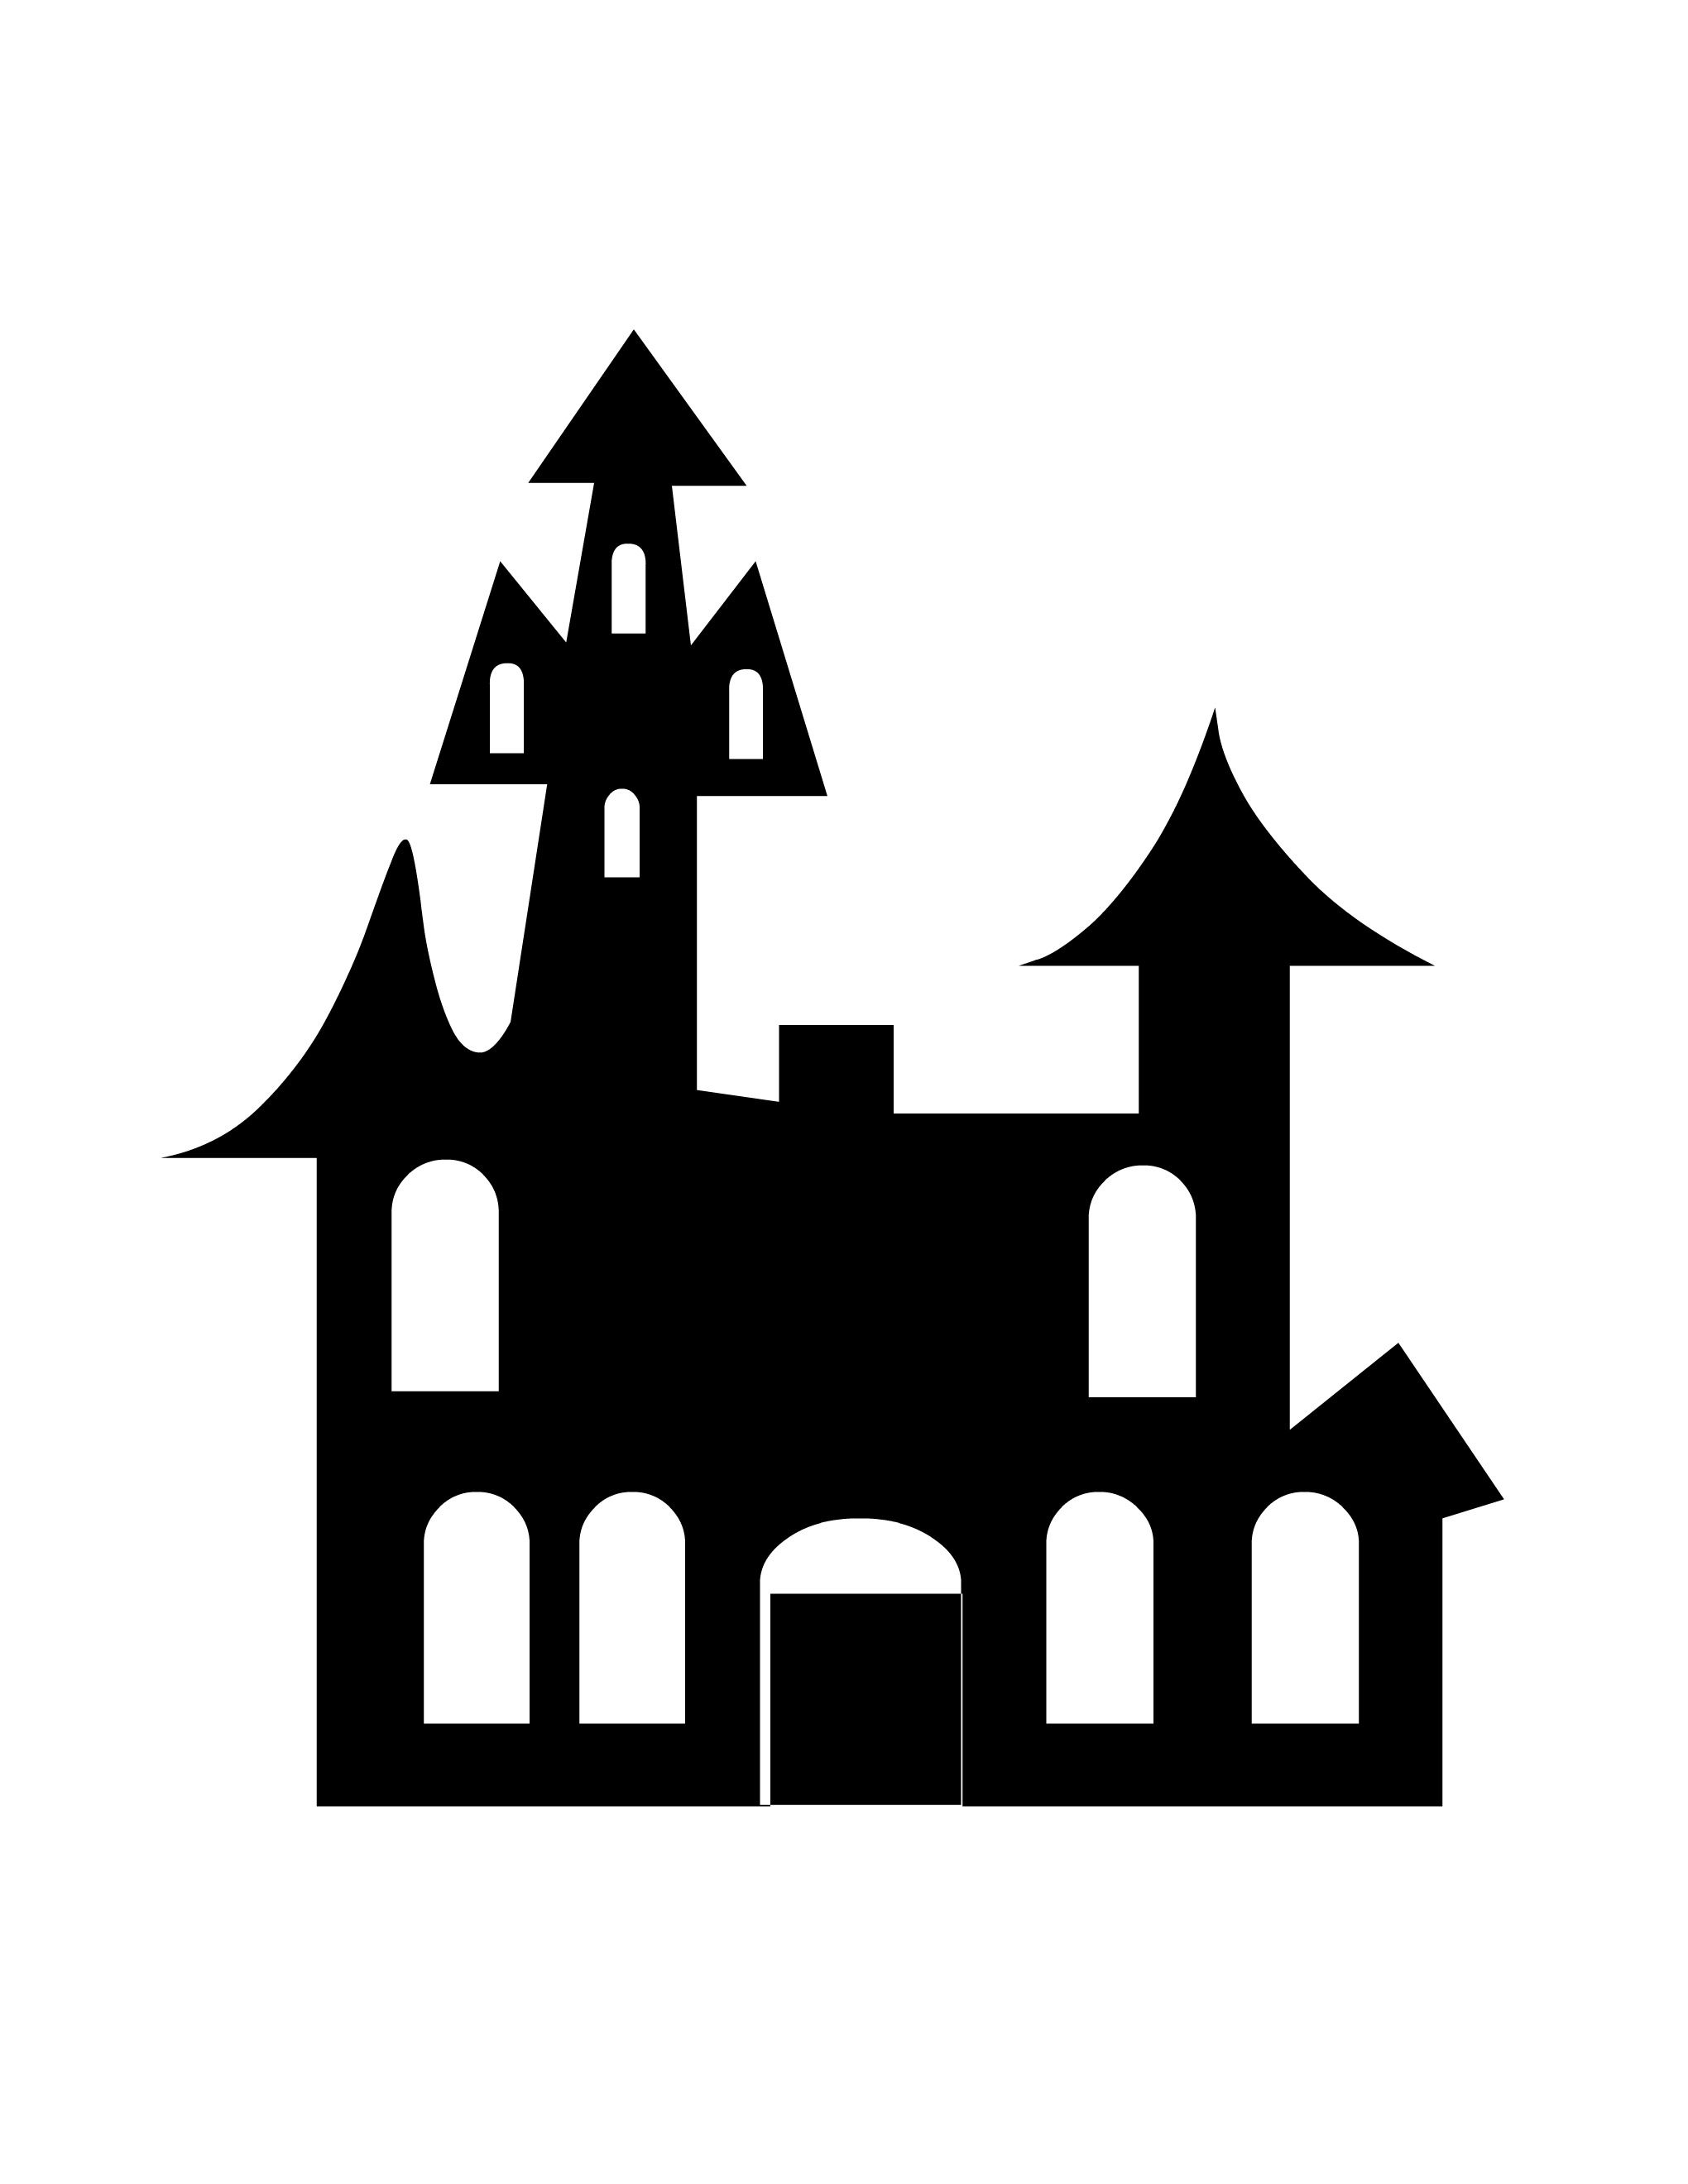 haunted house silhouettes coloring pages - photo#26